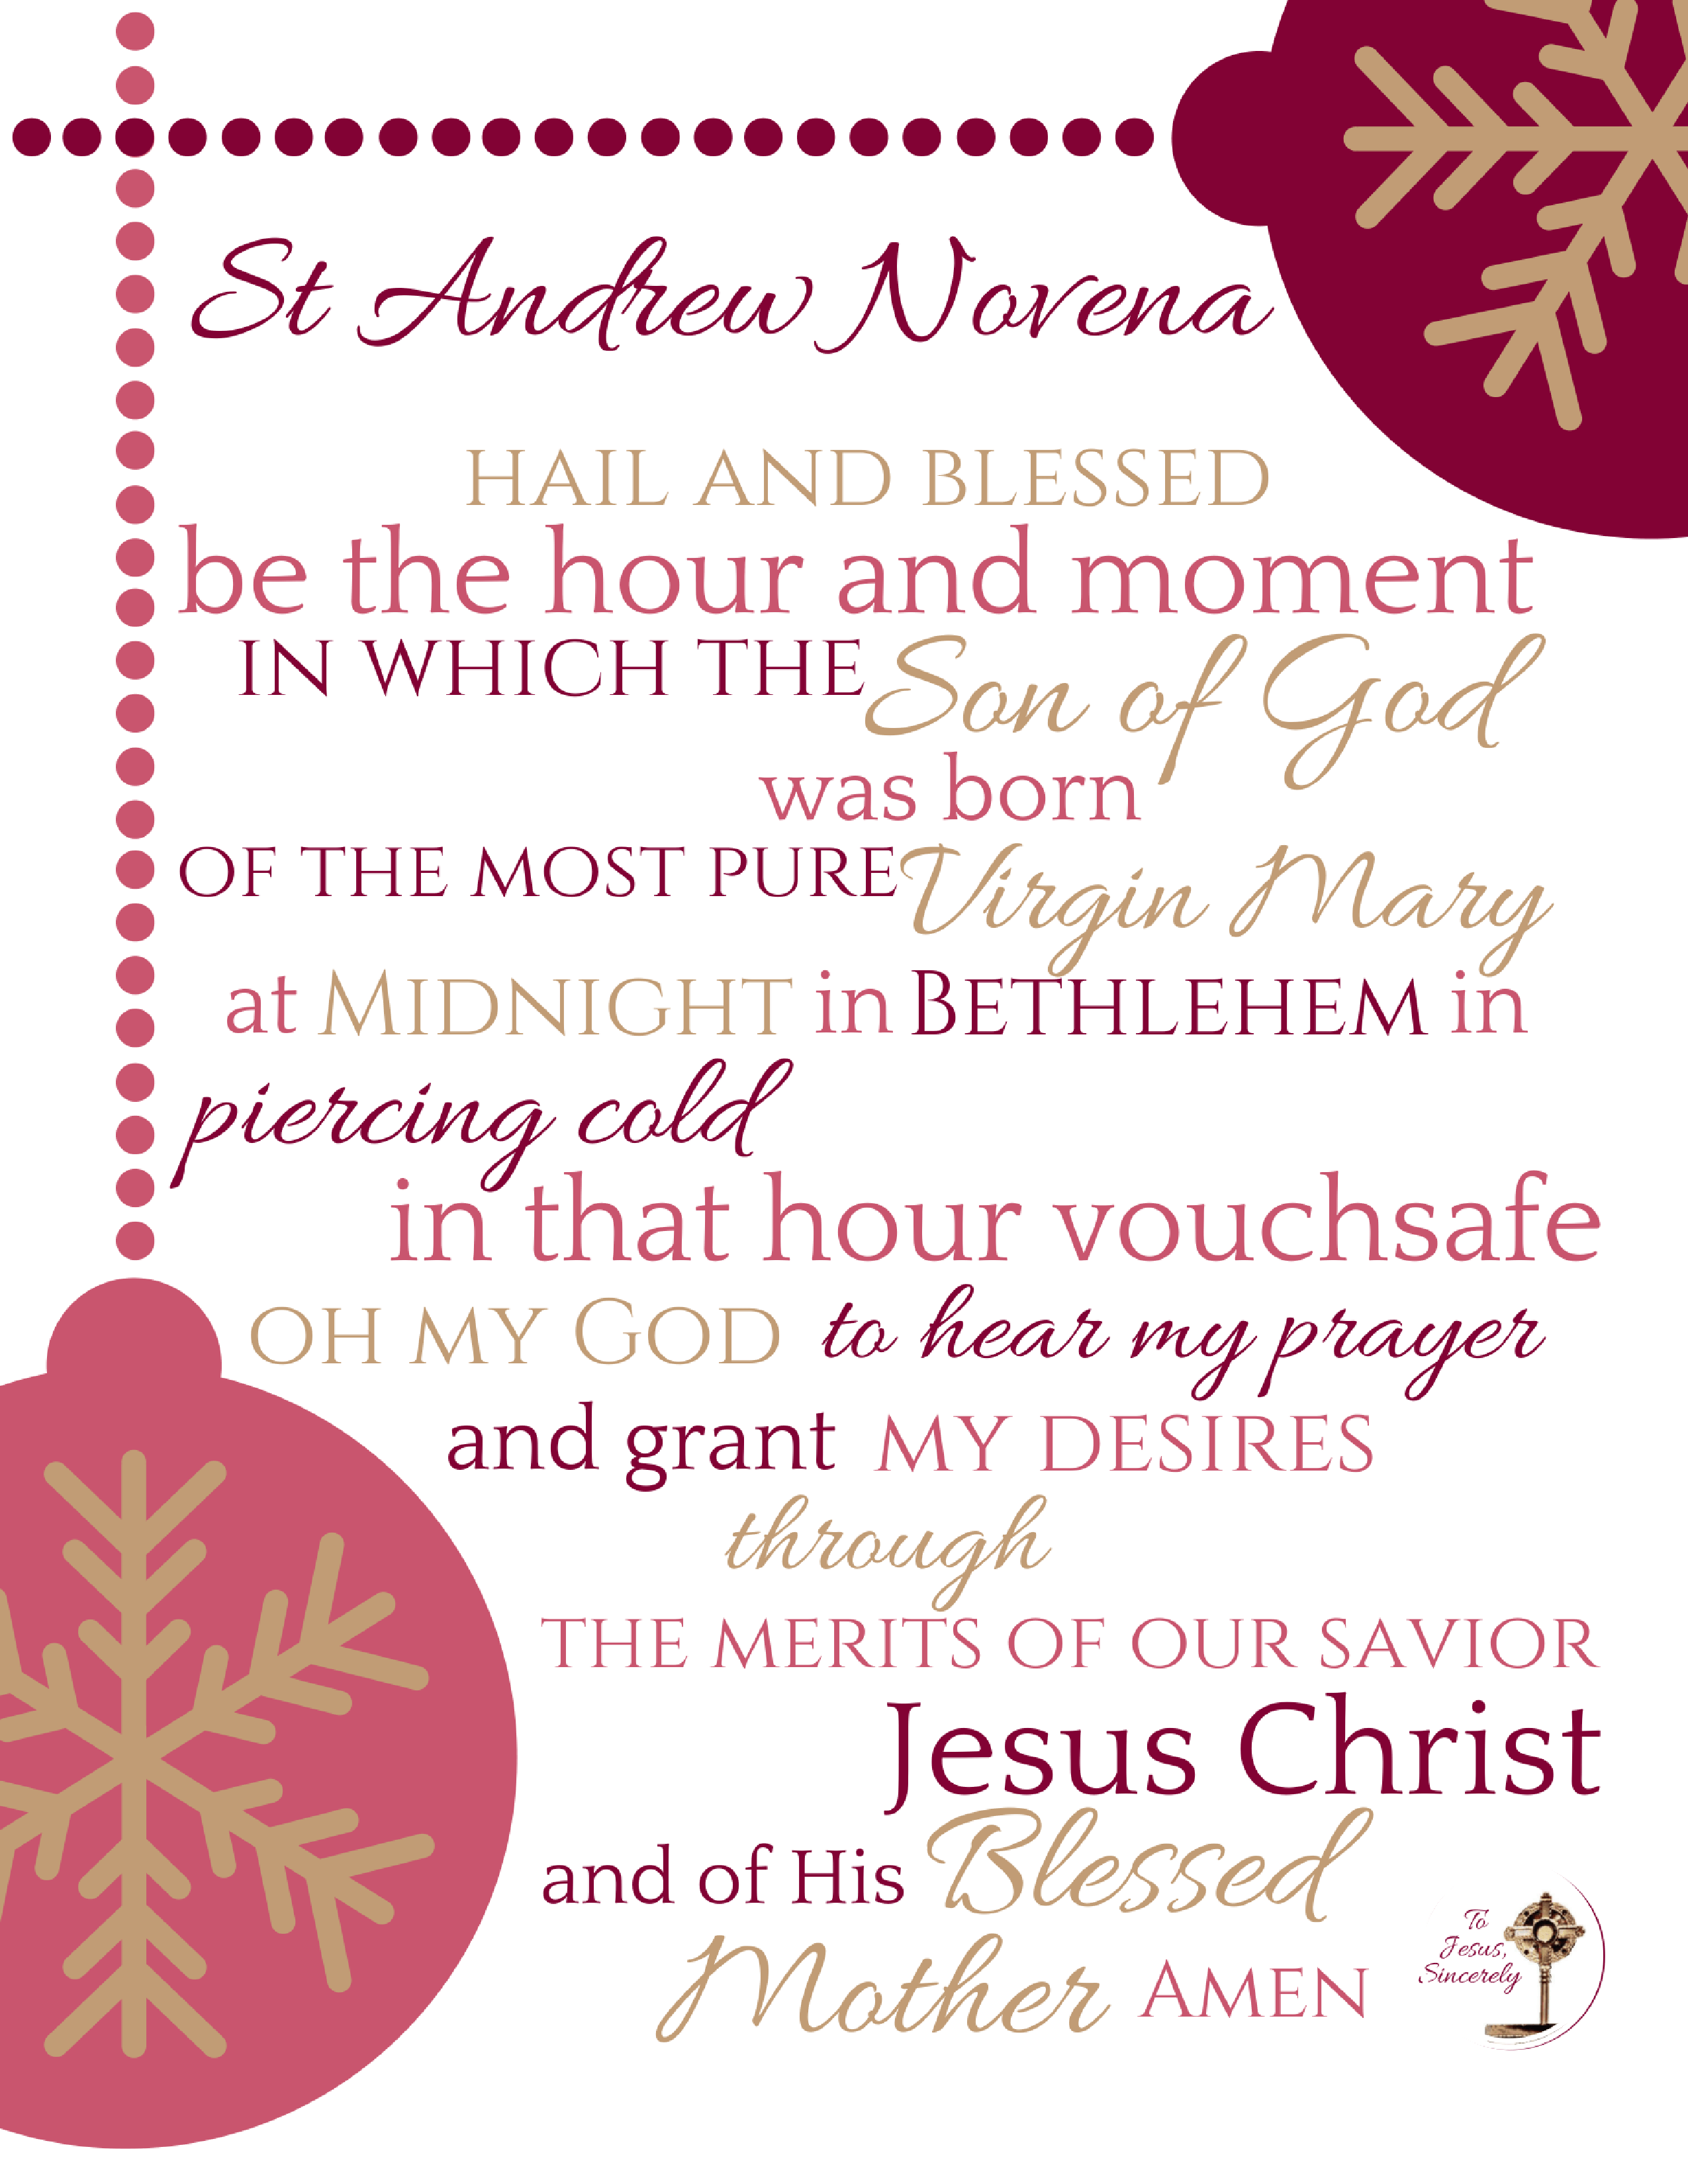 picture relating to St Andrew Novena Printable named A Prayer Lead for Arrival Toward Jesus Sincerely